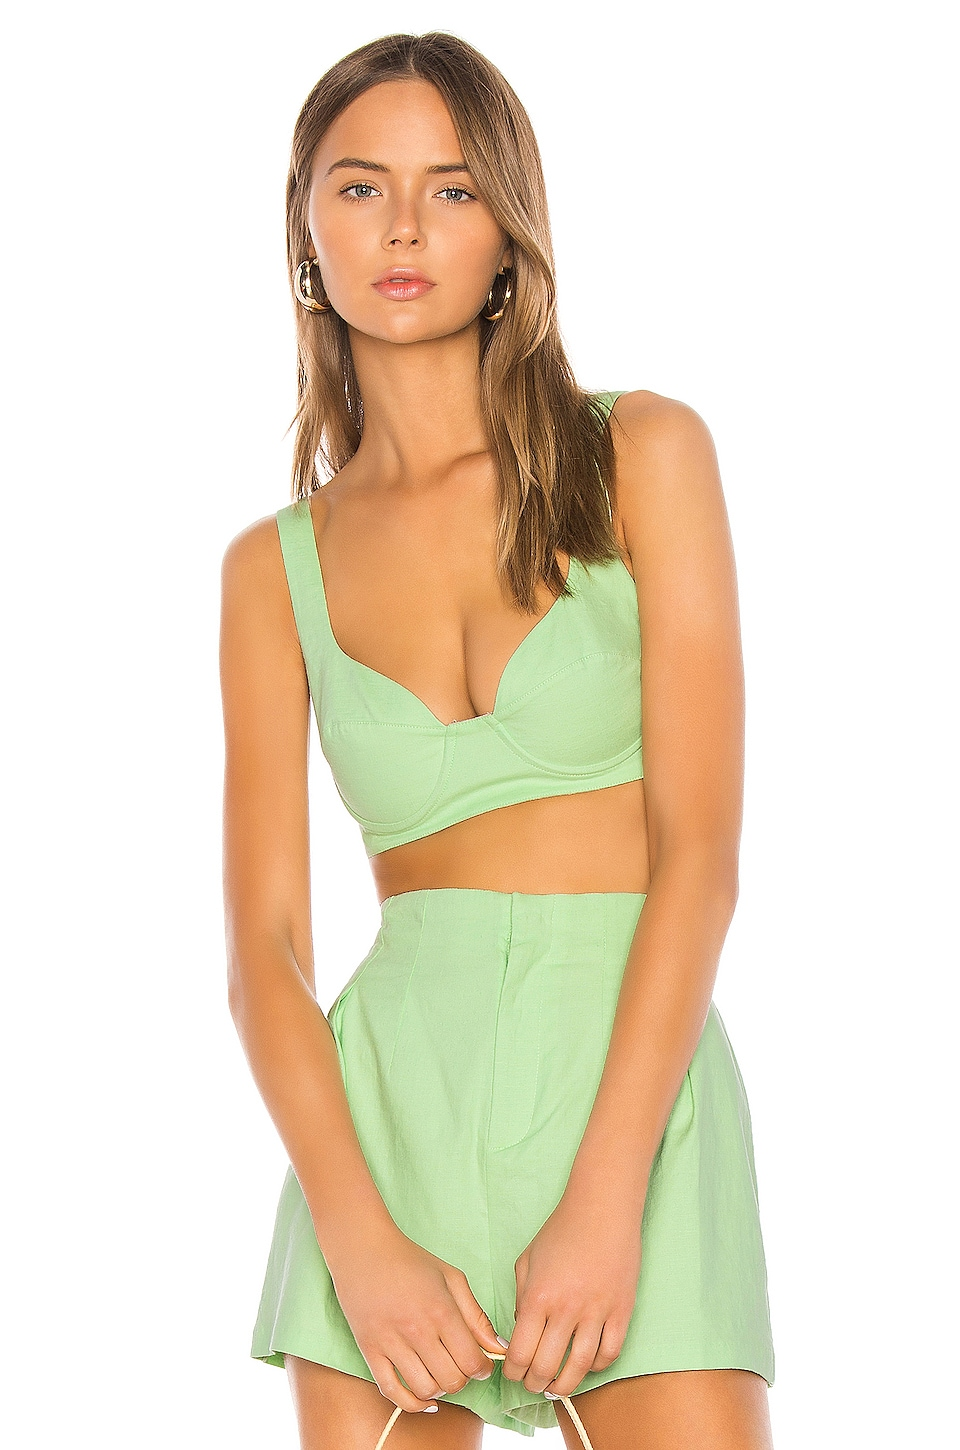 Camila Coelho Connor Top in Soft Mint